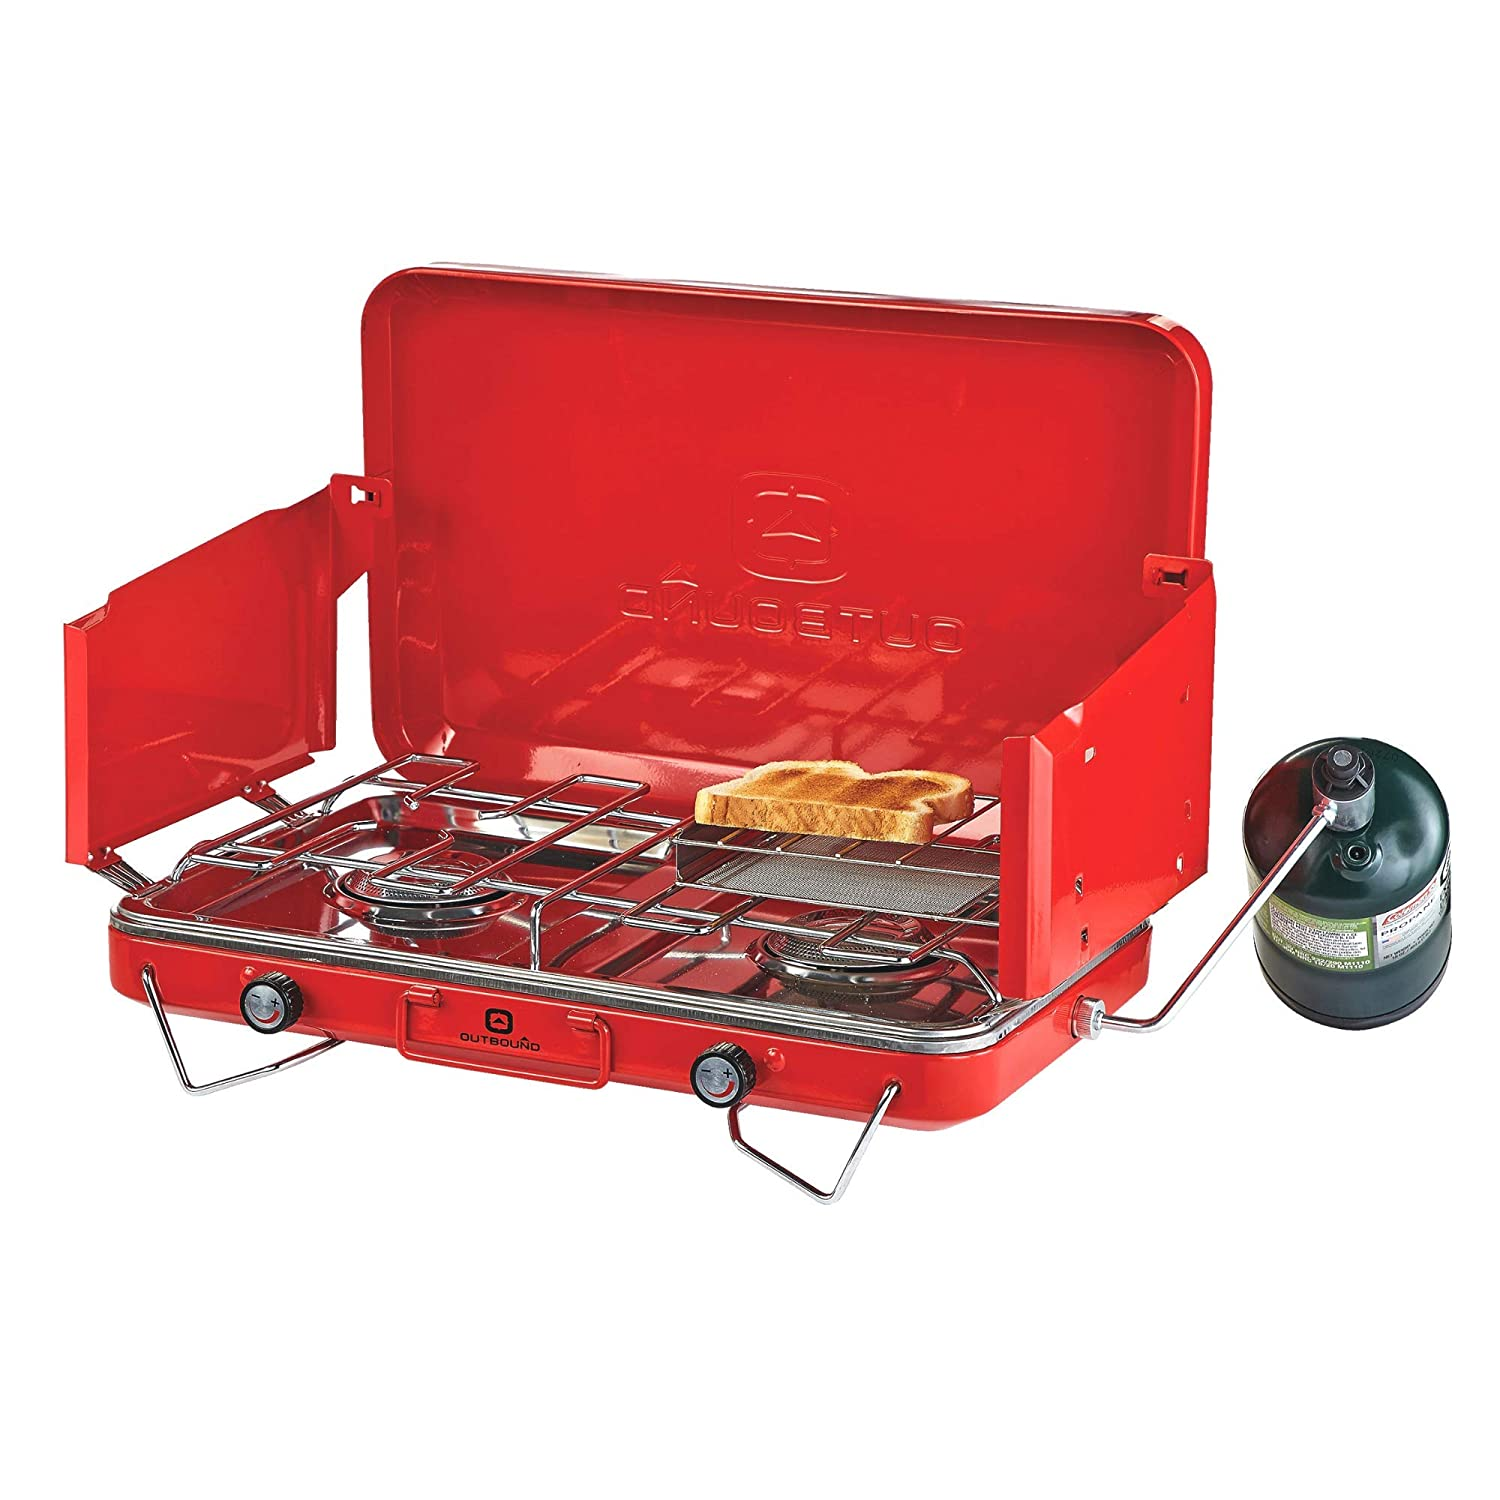 Perfect Camp Stove for Backpacking Outbound Camping Stove Portable Propane Gas Stove 2 Burners and Outdoor Cooking Camping Fishing